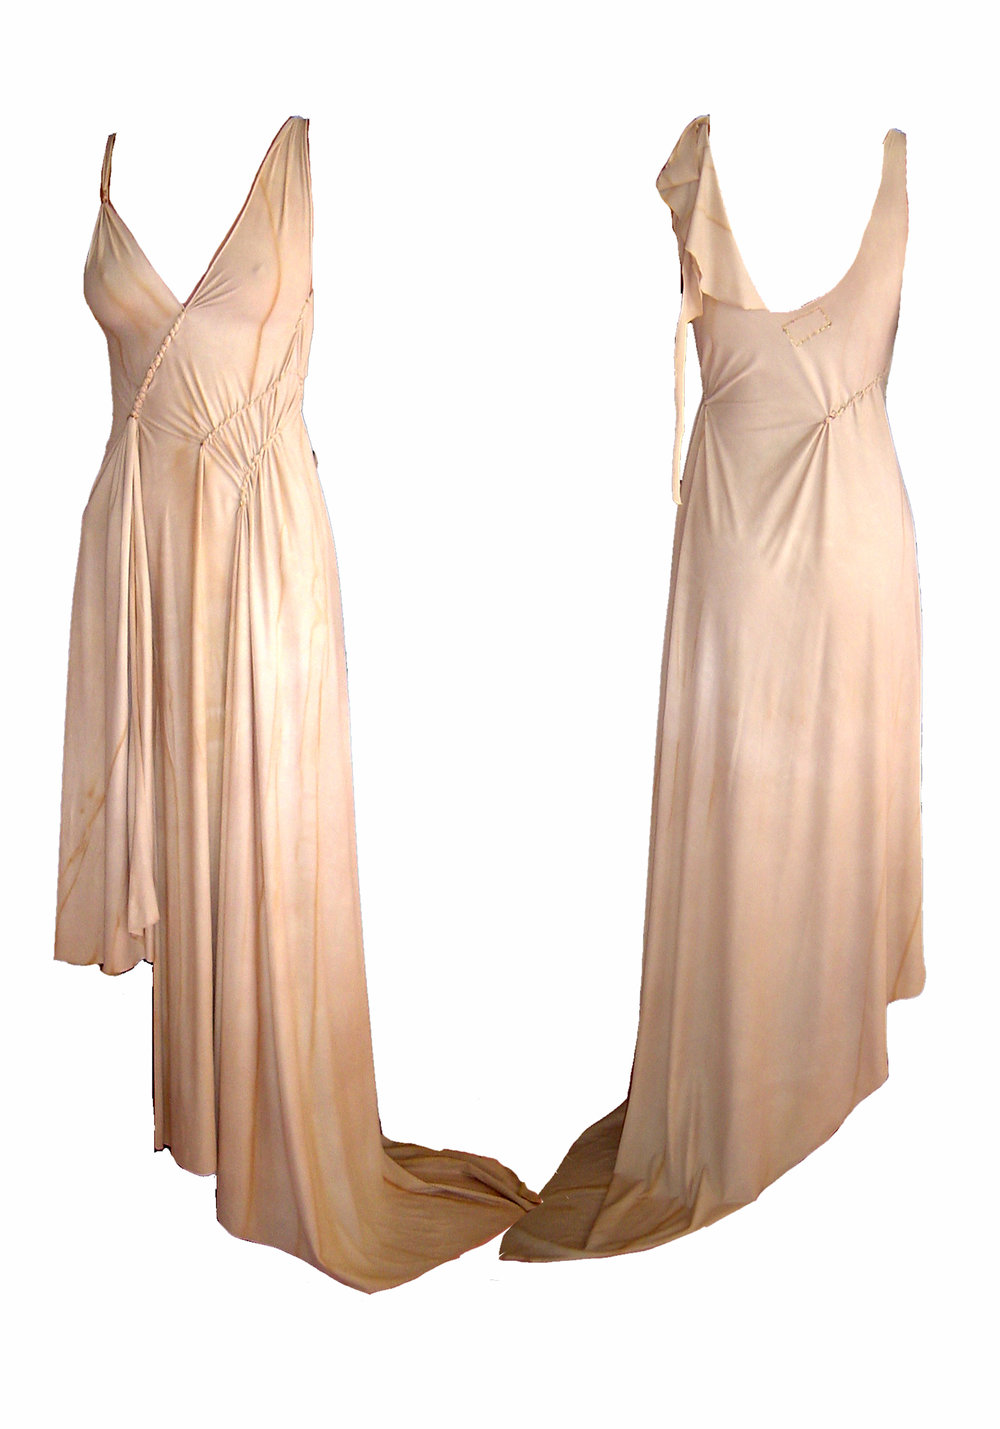 camel gown copy.jpg